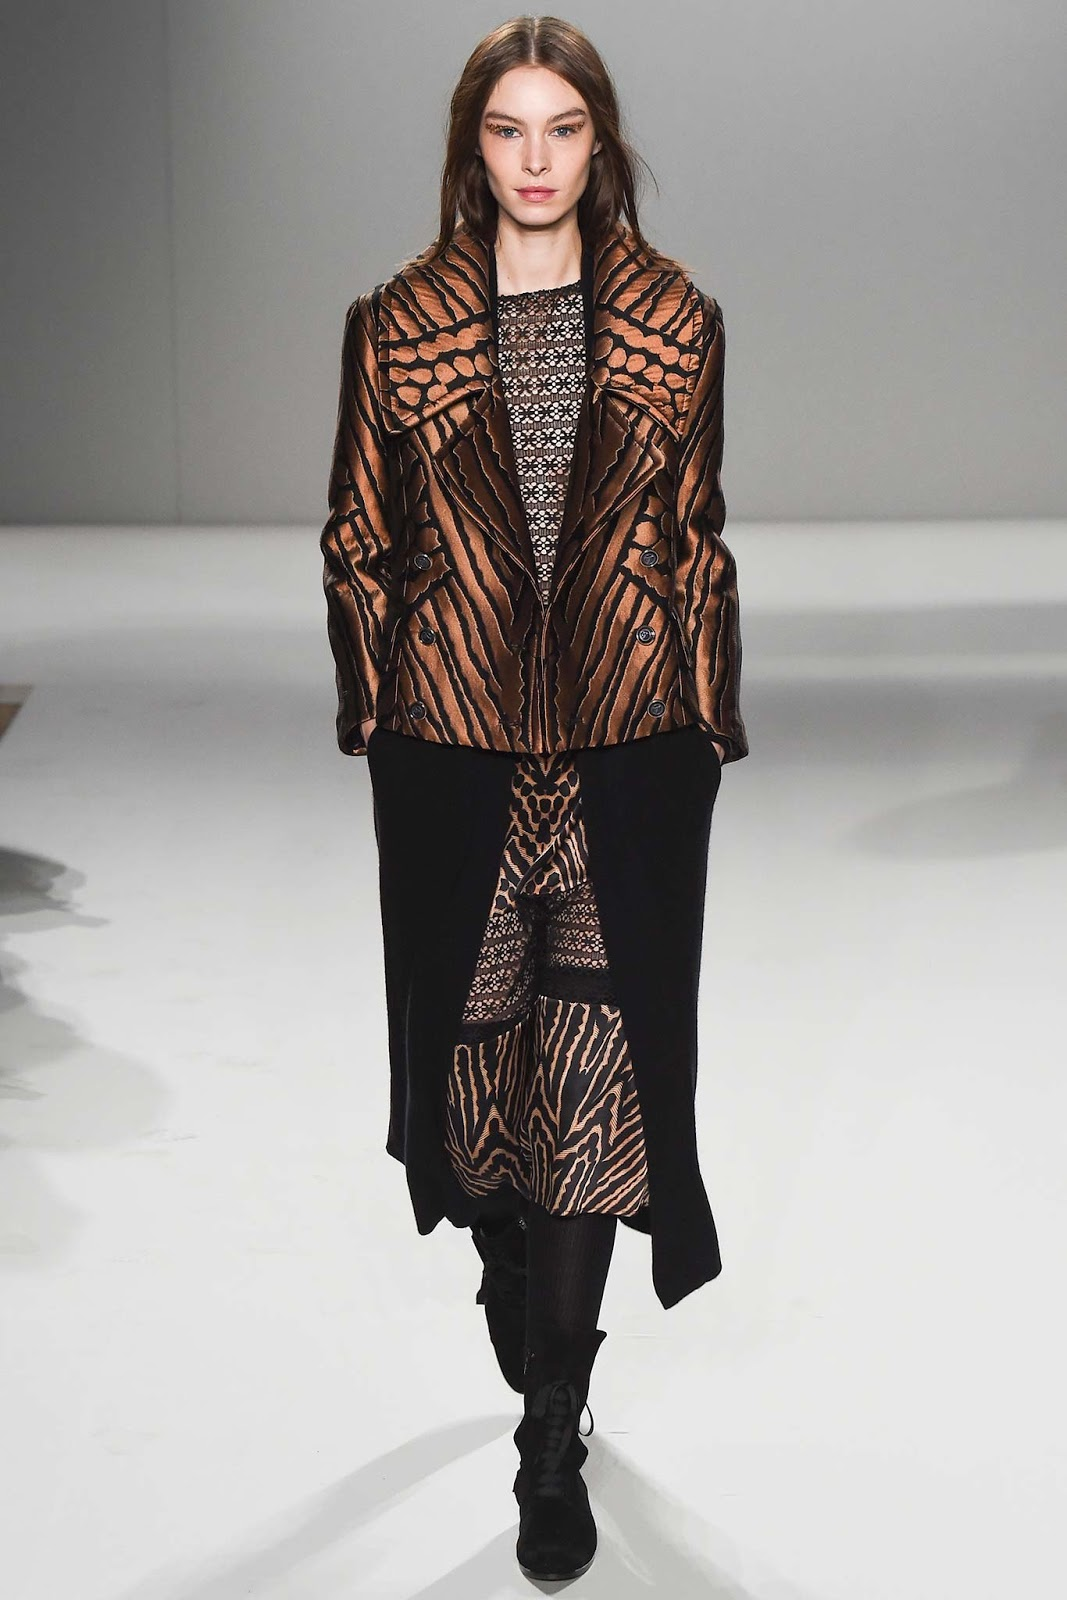 Brocade trend on AW 2015 runway at Temperley London / via www.fashionedbylove.co.uk